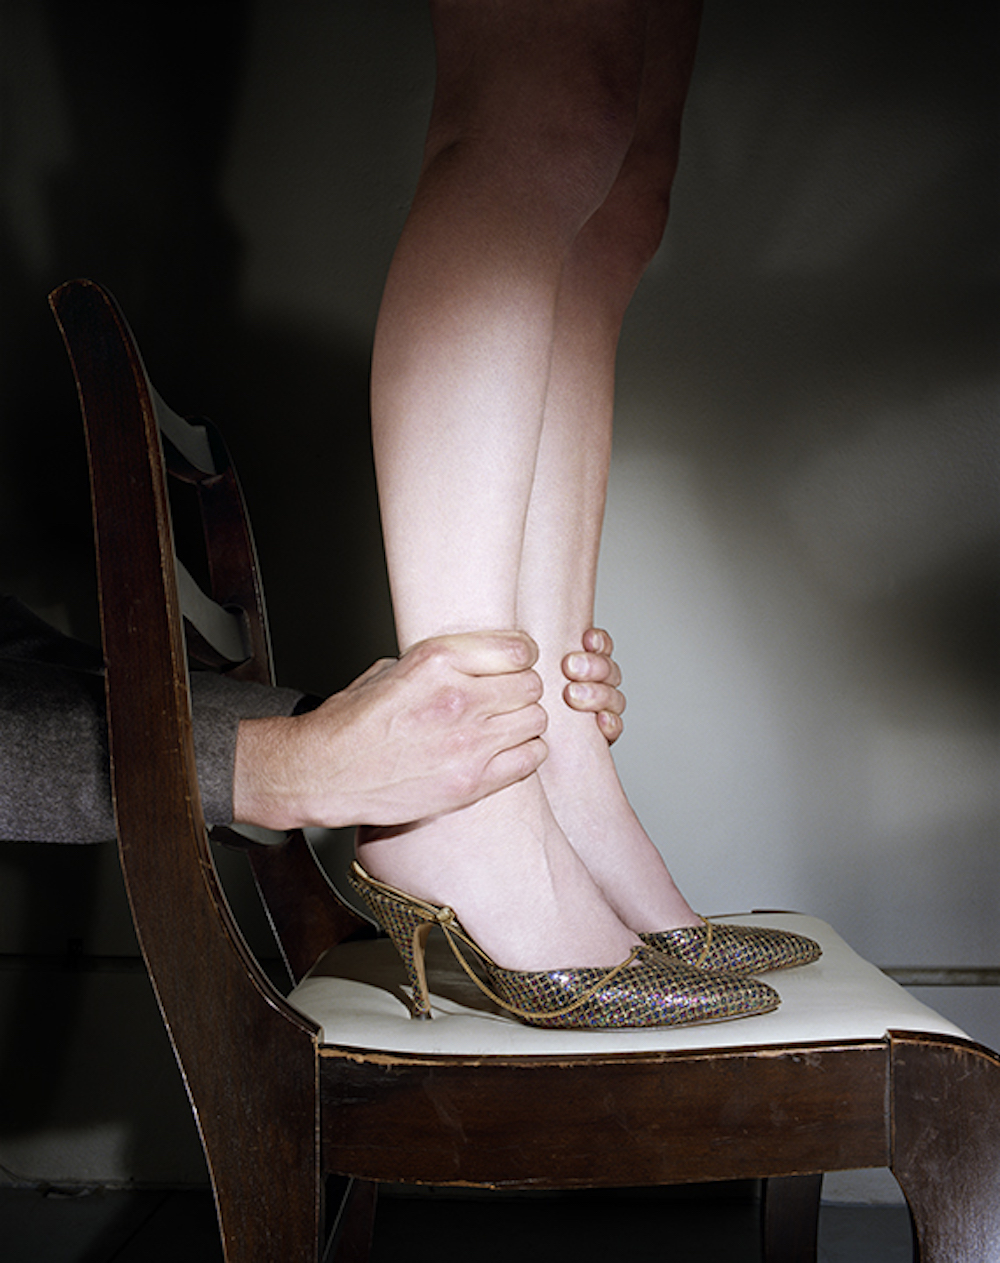 Jo Ann Callis  Untitled , From  Early Color  Portfolio, Circa 1976 16 x 20 inches/ 9.75 x 12 inches Archival Pigment Print